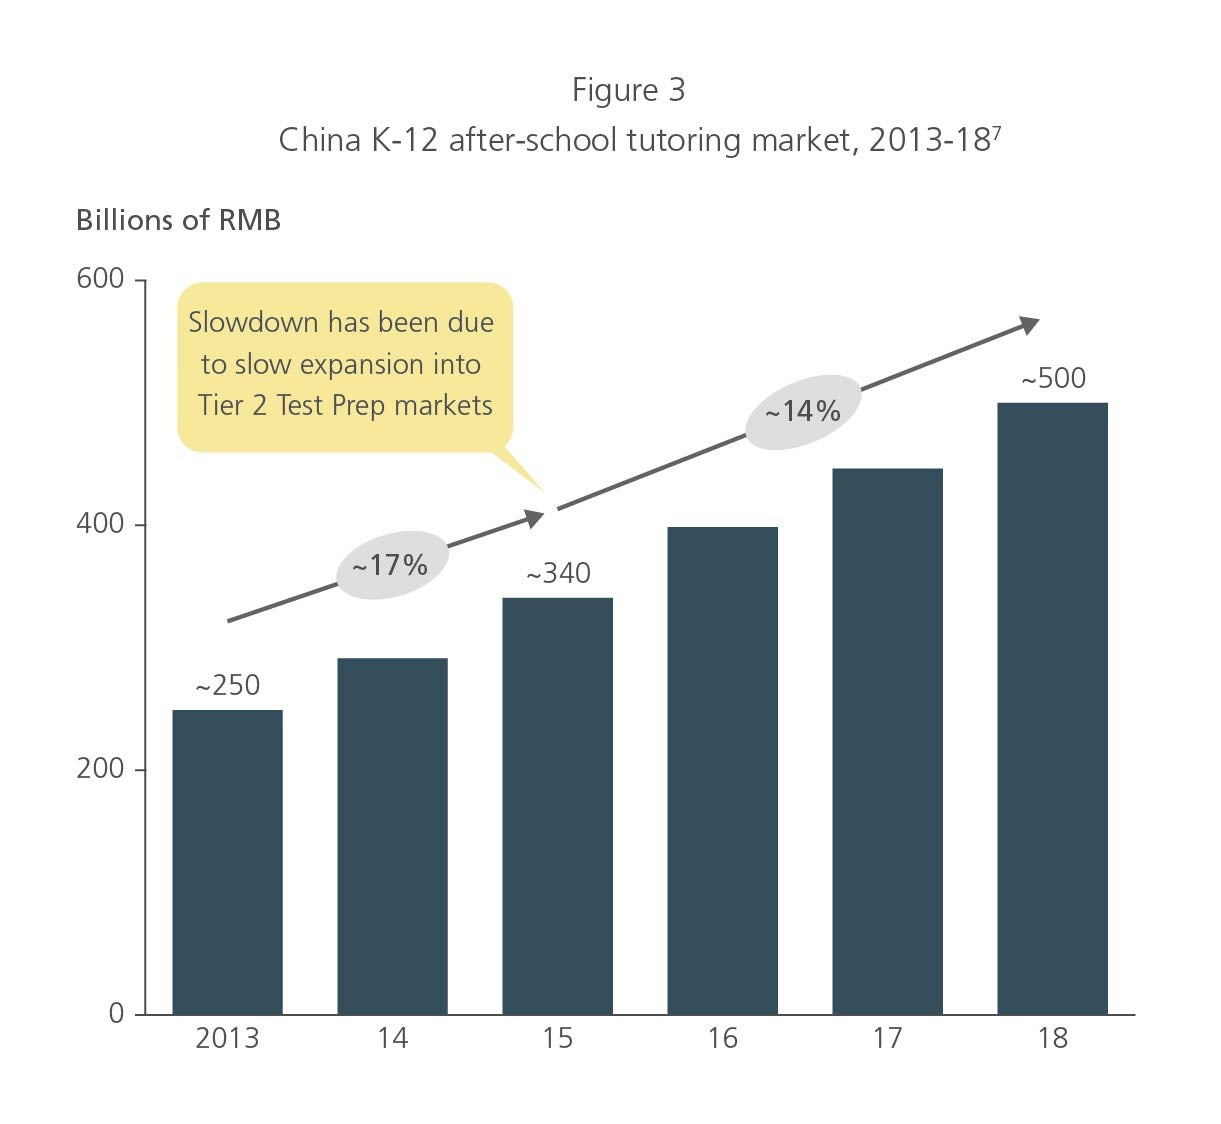 China K-12 after-school tutoring market 2013-18